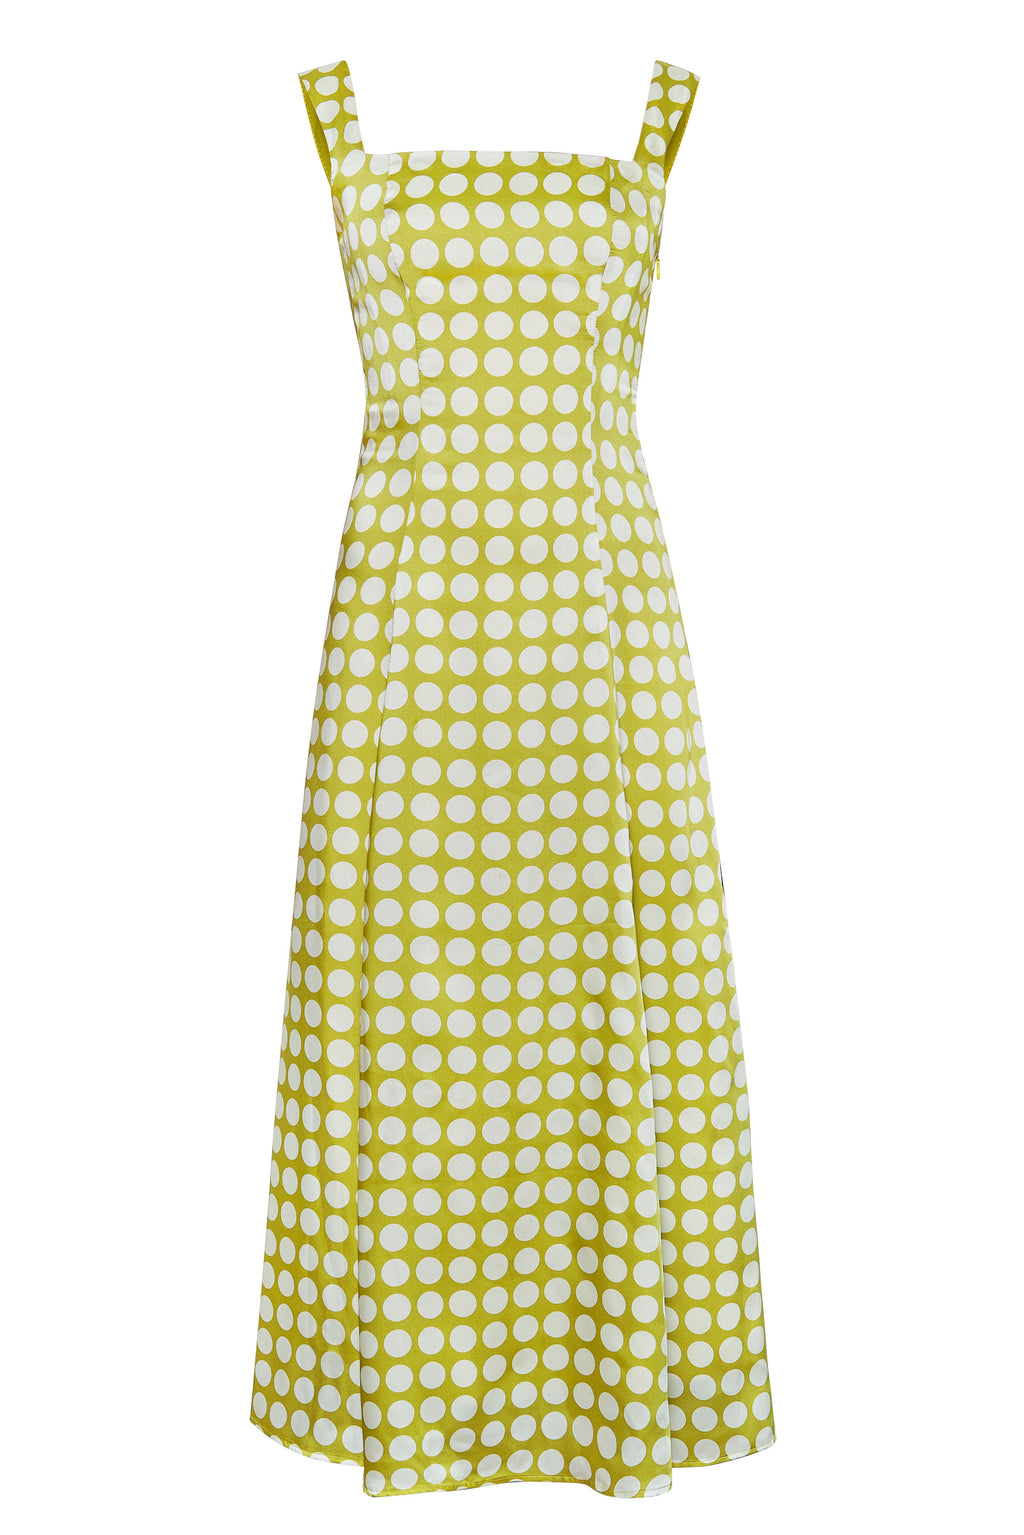 Bandana Green Polka Dress - Annie's Ibiza